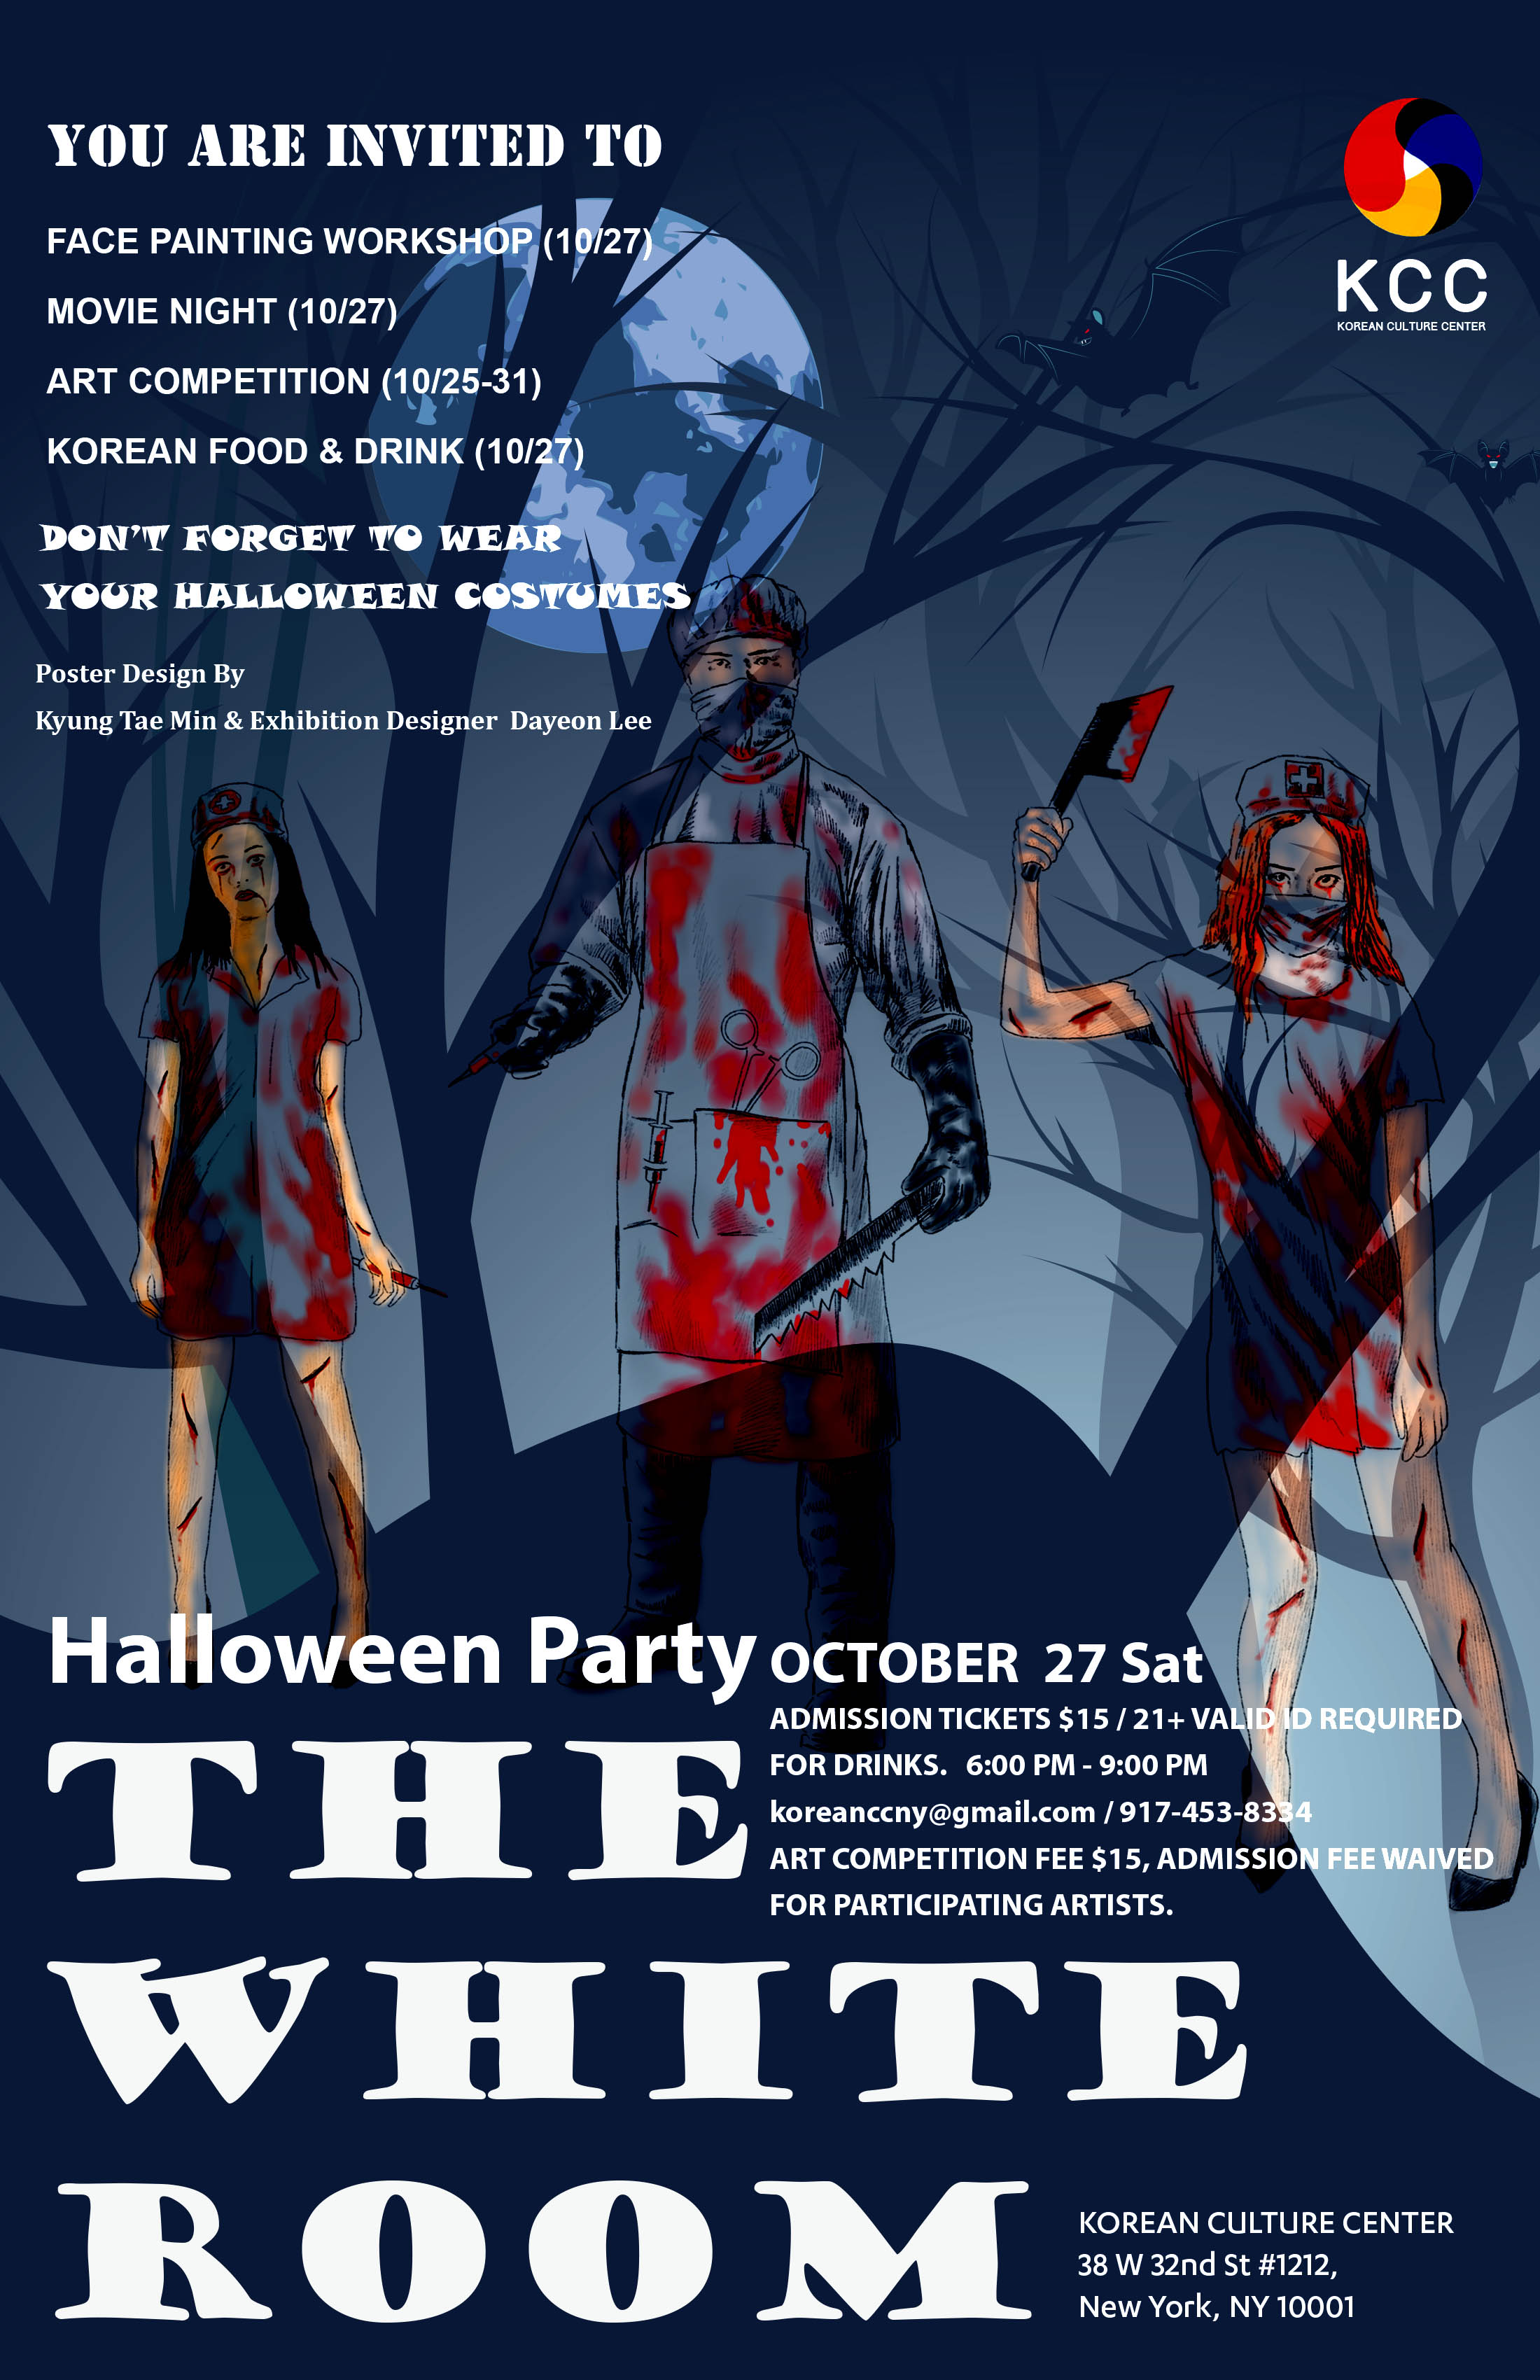 korean culture center halloween party & art competition | americans